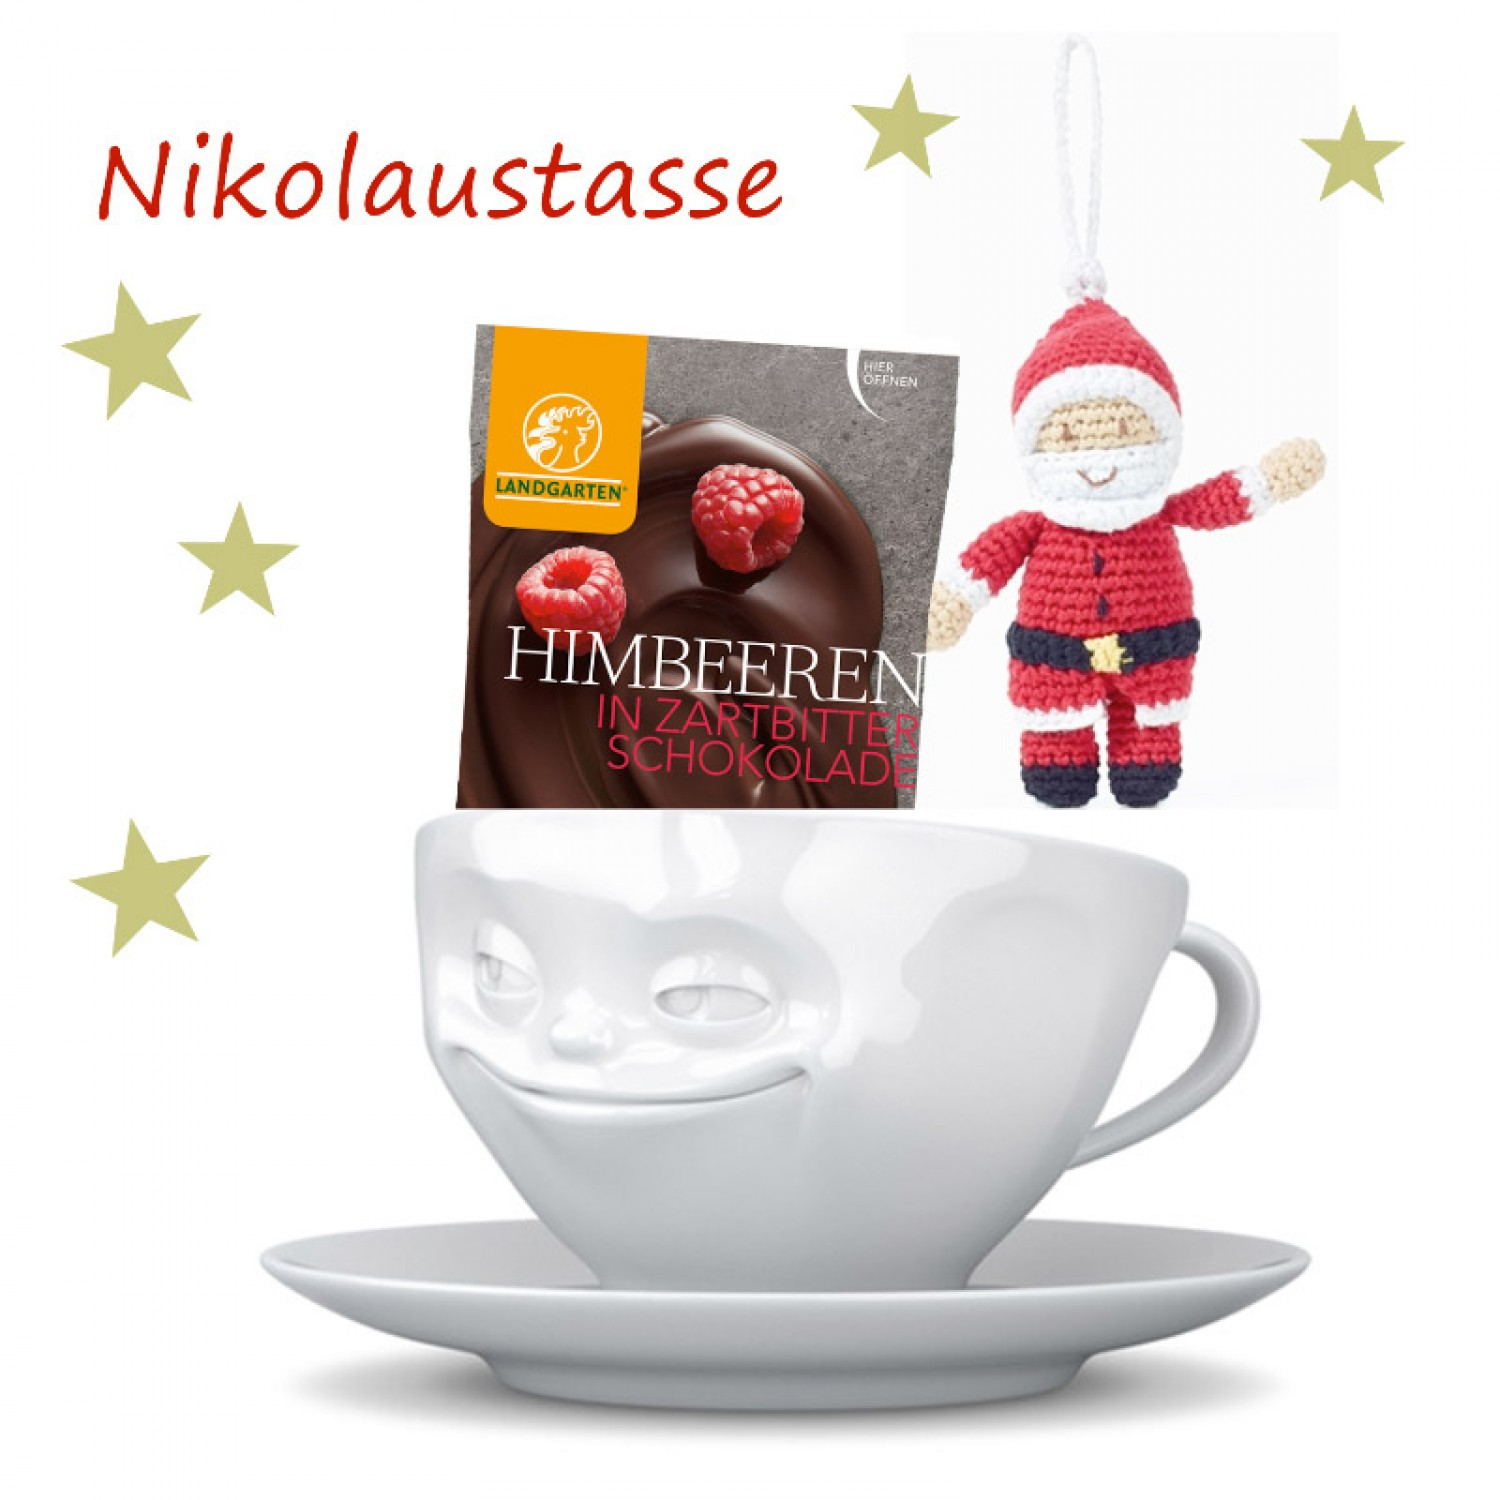 Fiftyeight Products Nikolaus-Set Porzellan & Knabbereien